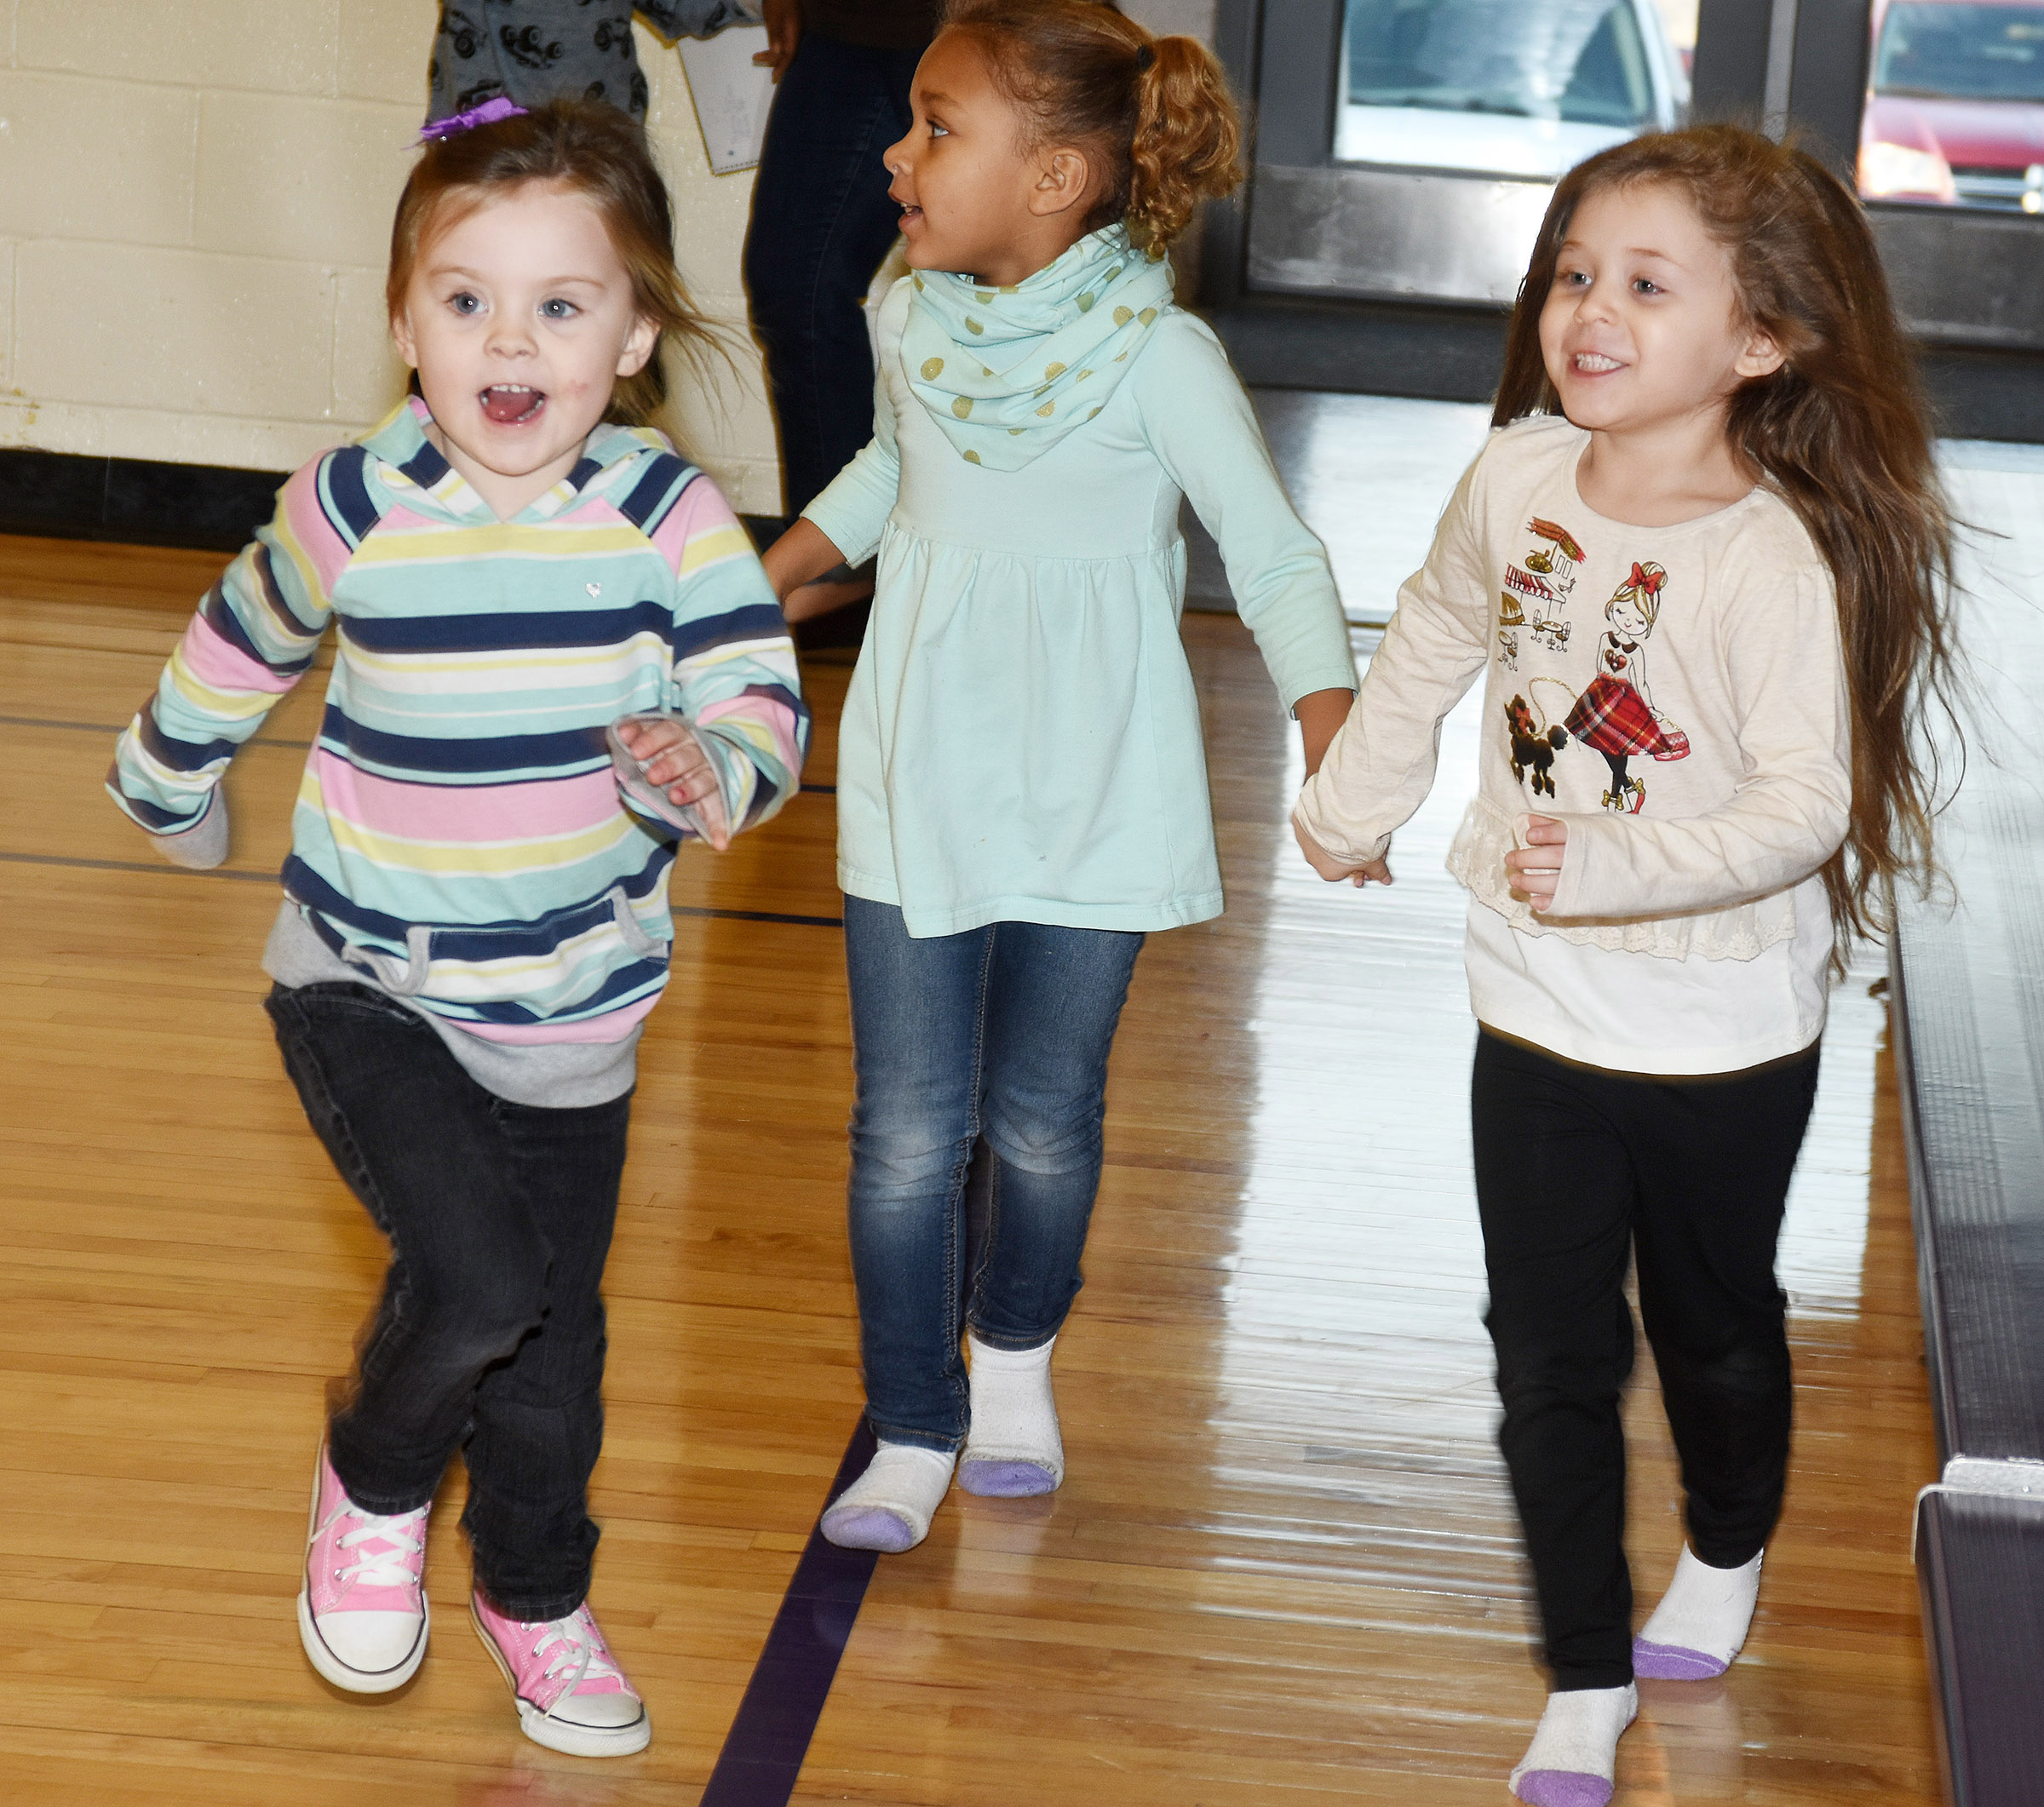 From left, CES preschool students Tori Clark, Adaia Taylor and Mila Moss run in the gym.